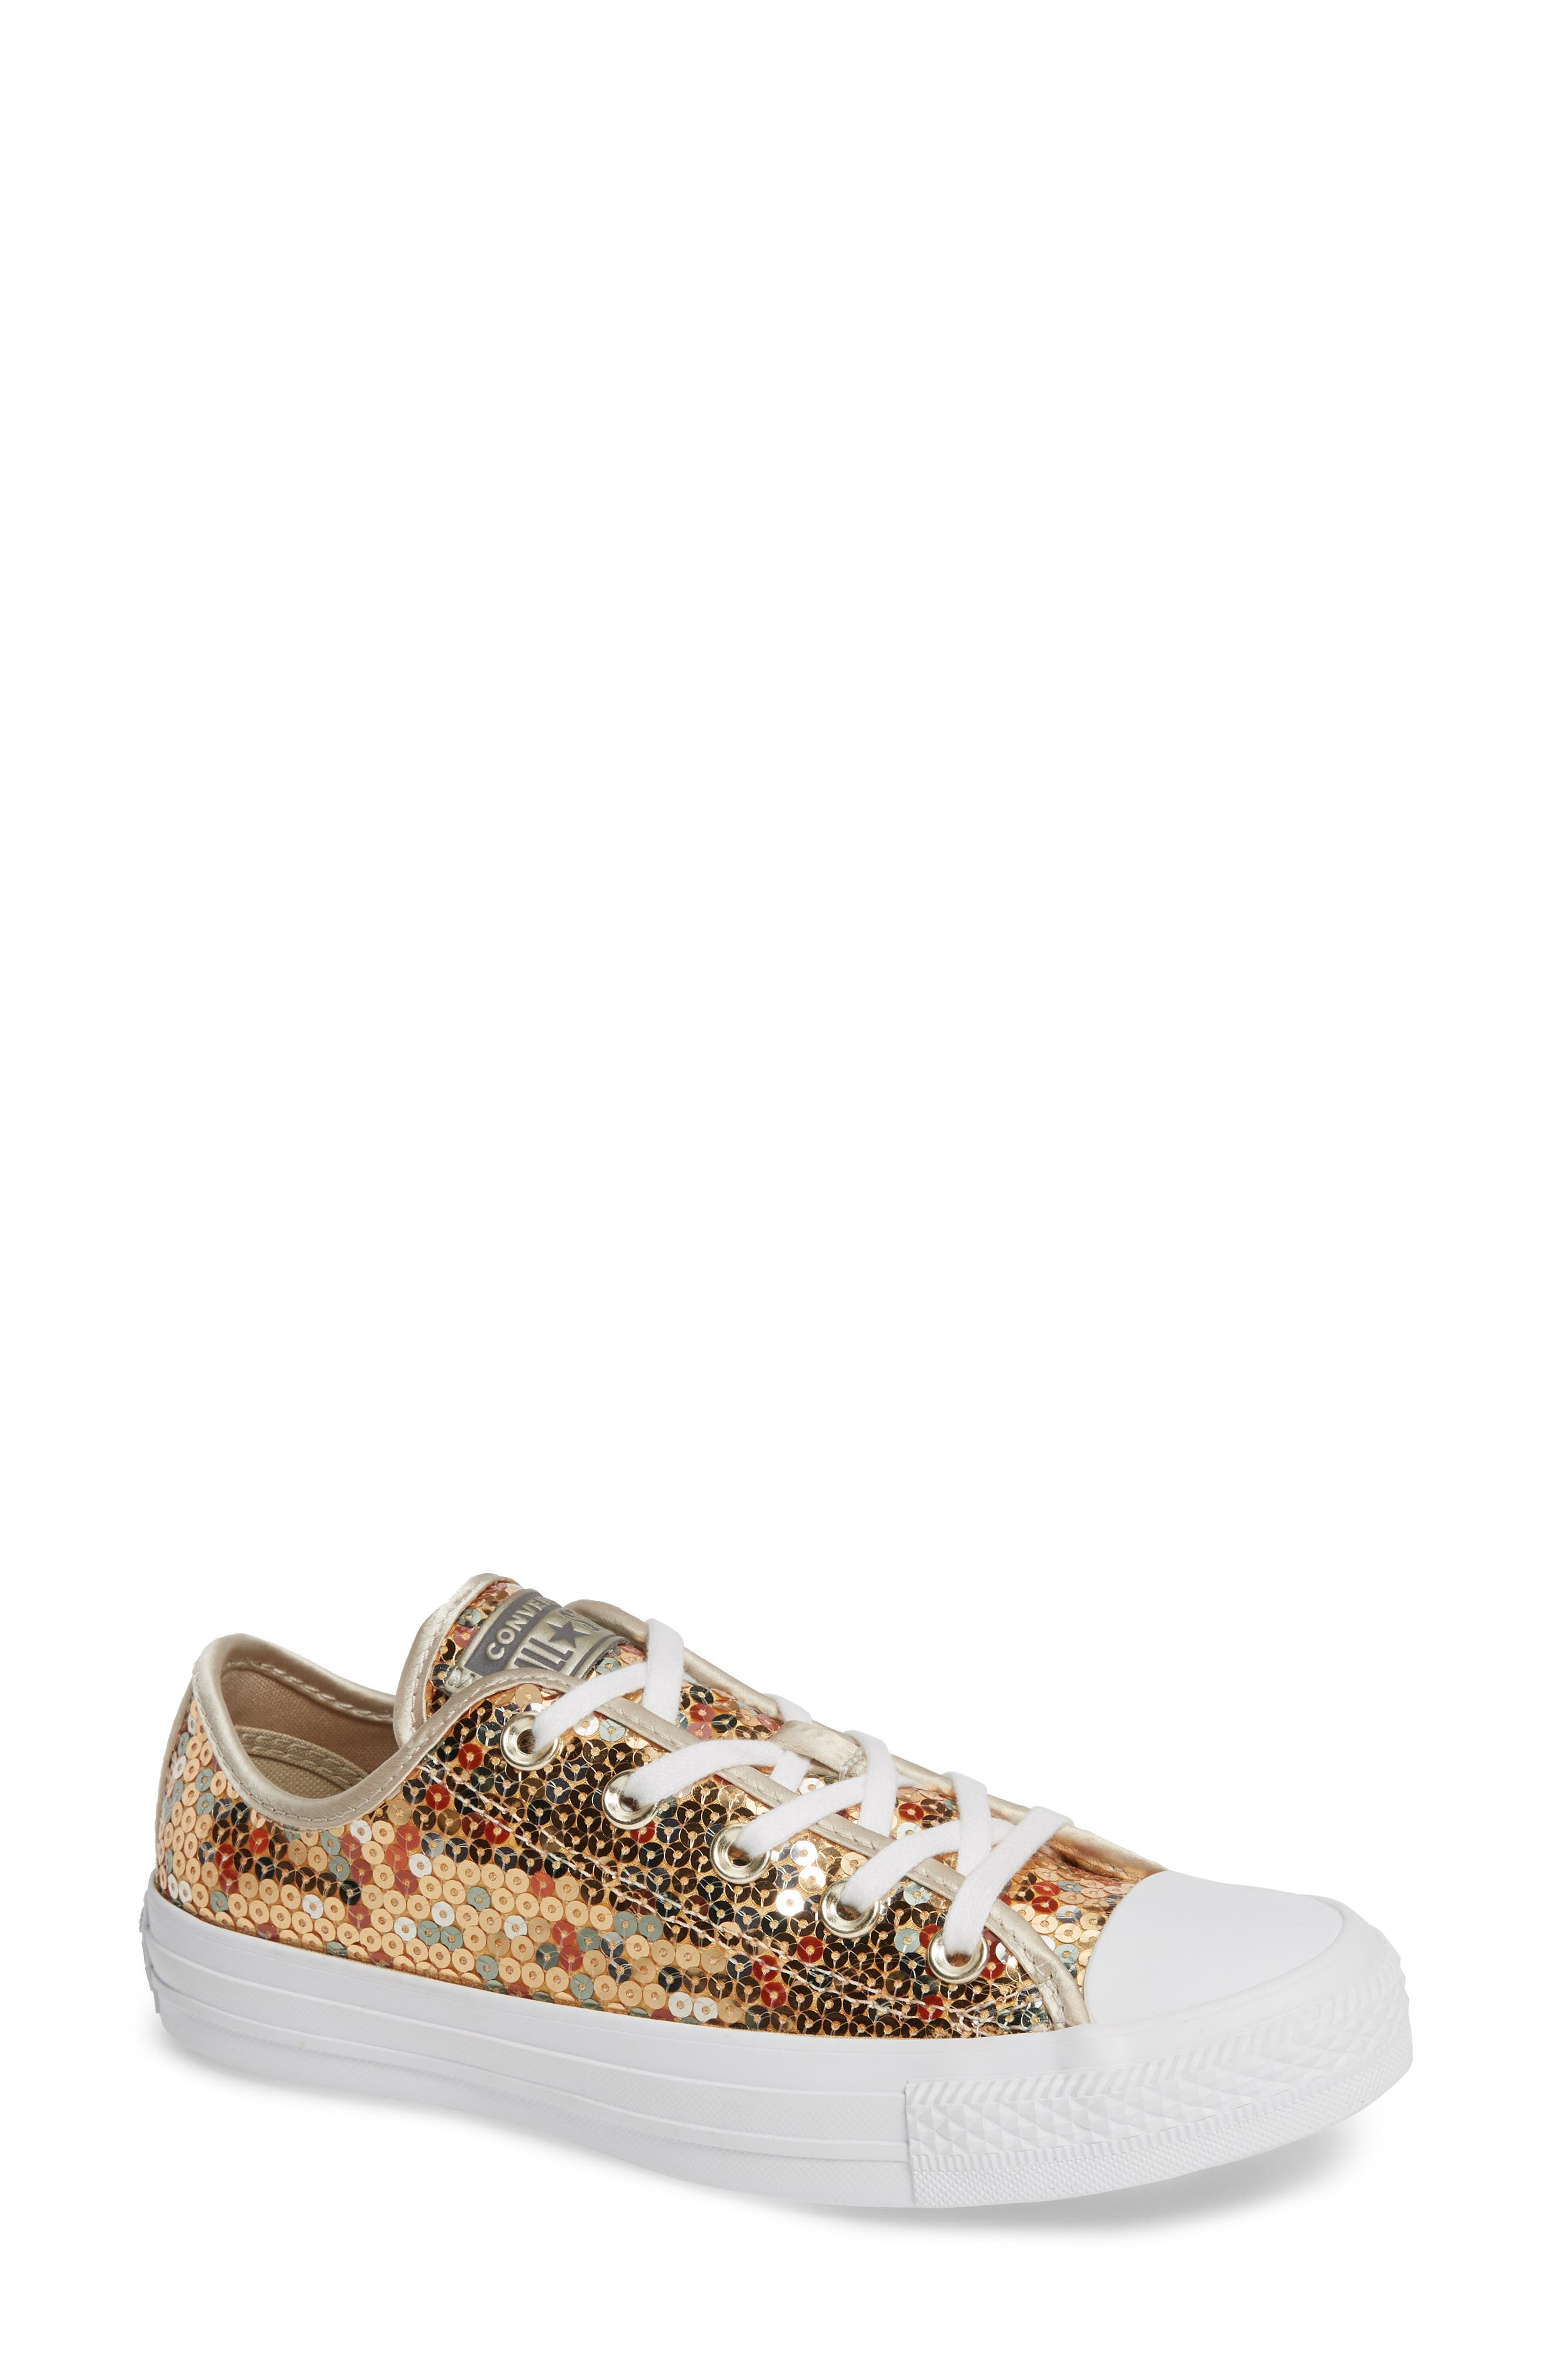 CONVERSE Chuck Taylor<sup>®</sup> All Star<sup>®</sup> Sequin Low Top Sneaker, Main, color, GOLD SEQUINS